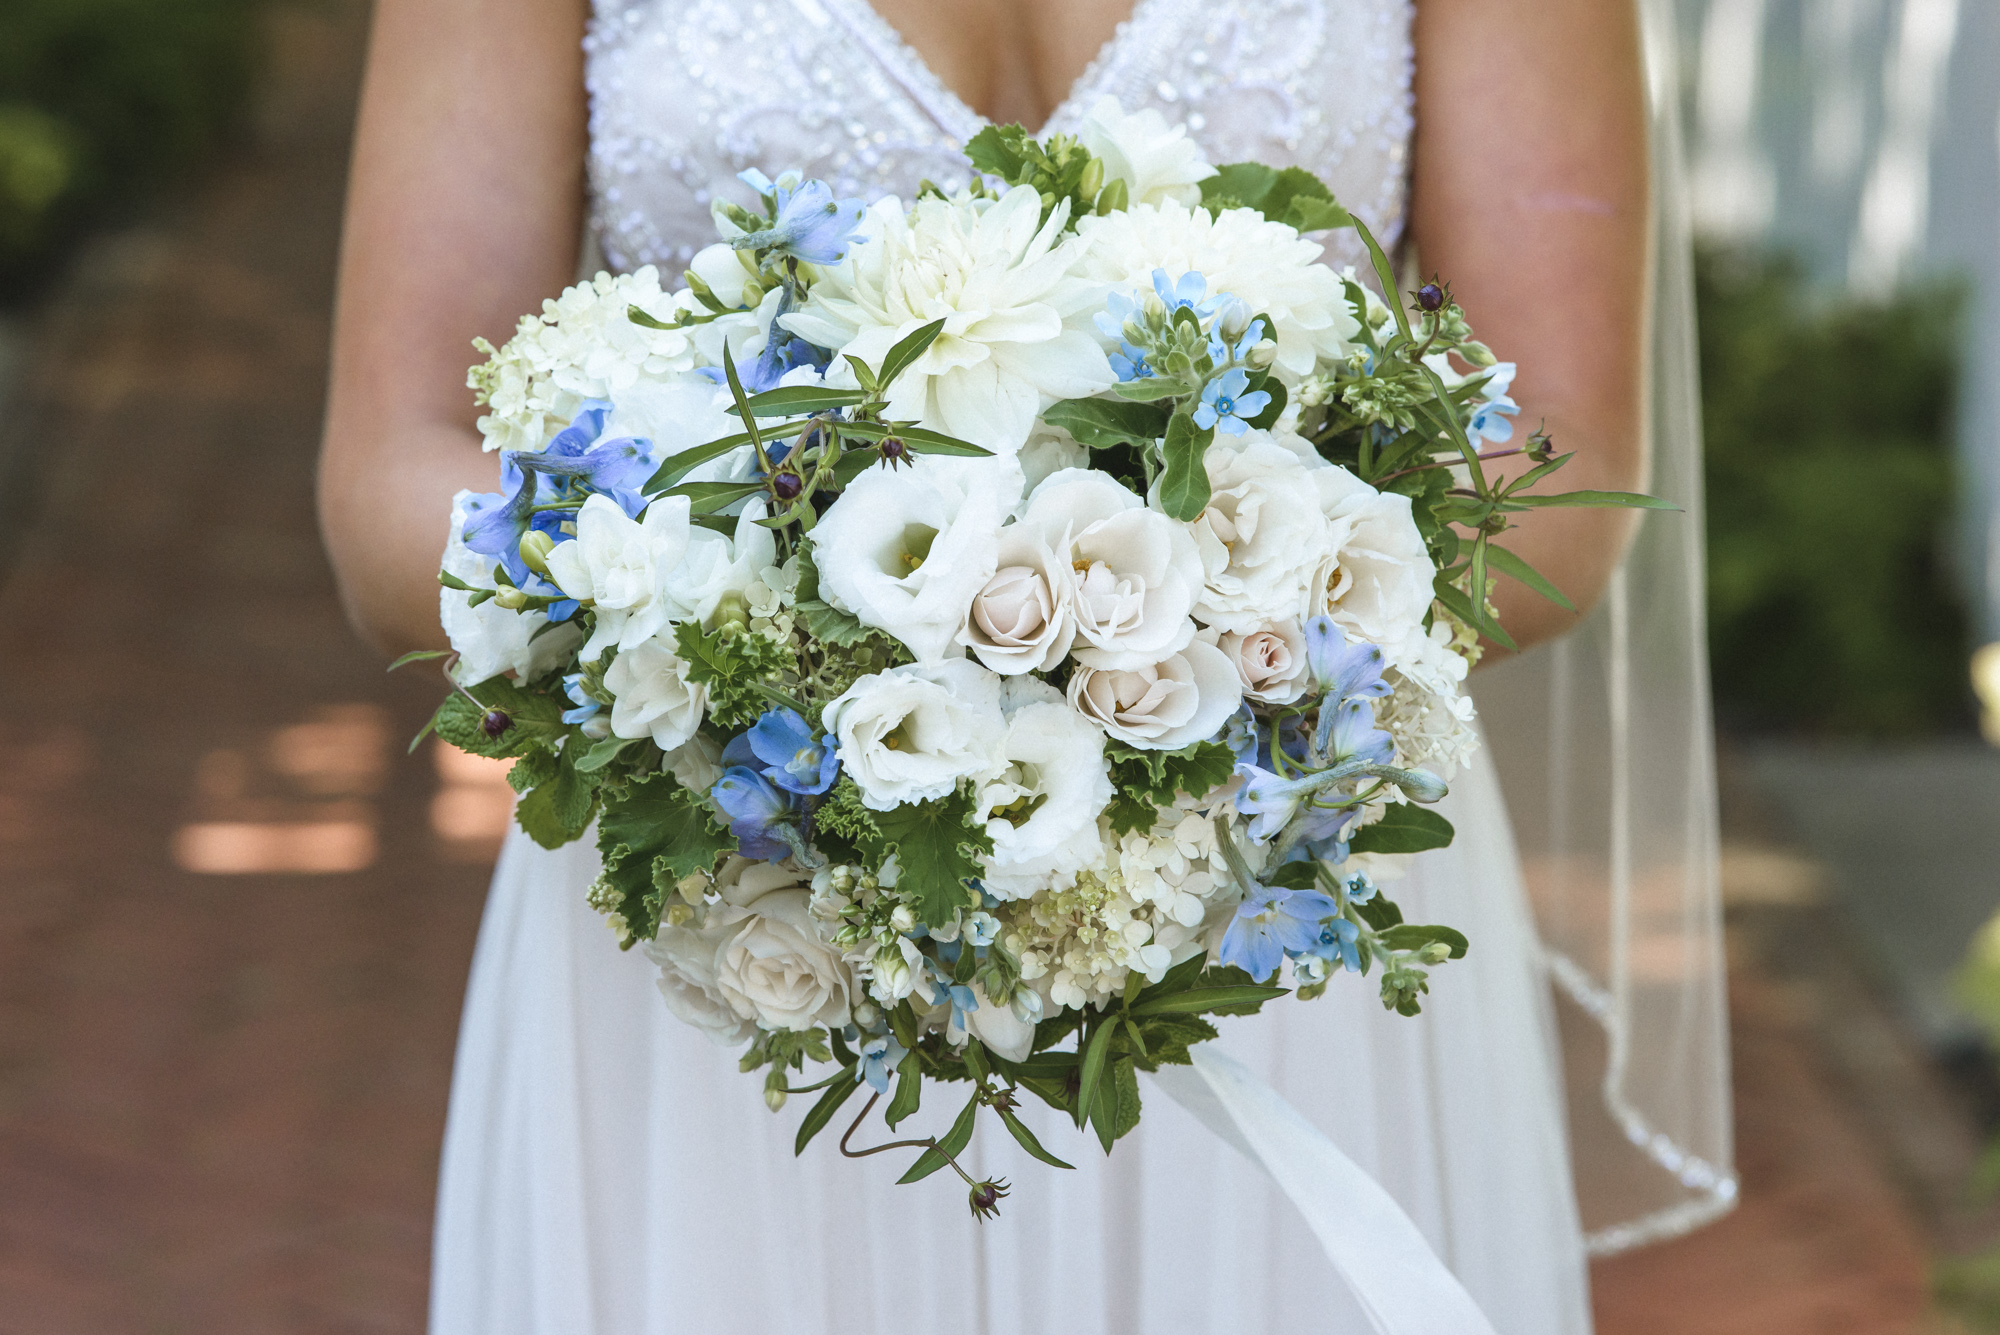 A Morrice Florist bridal bouquet photo by David Welch Photography